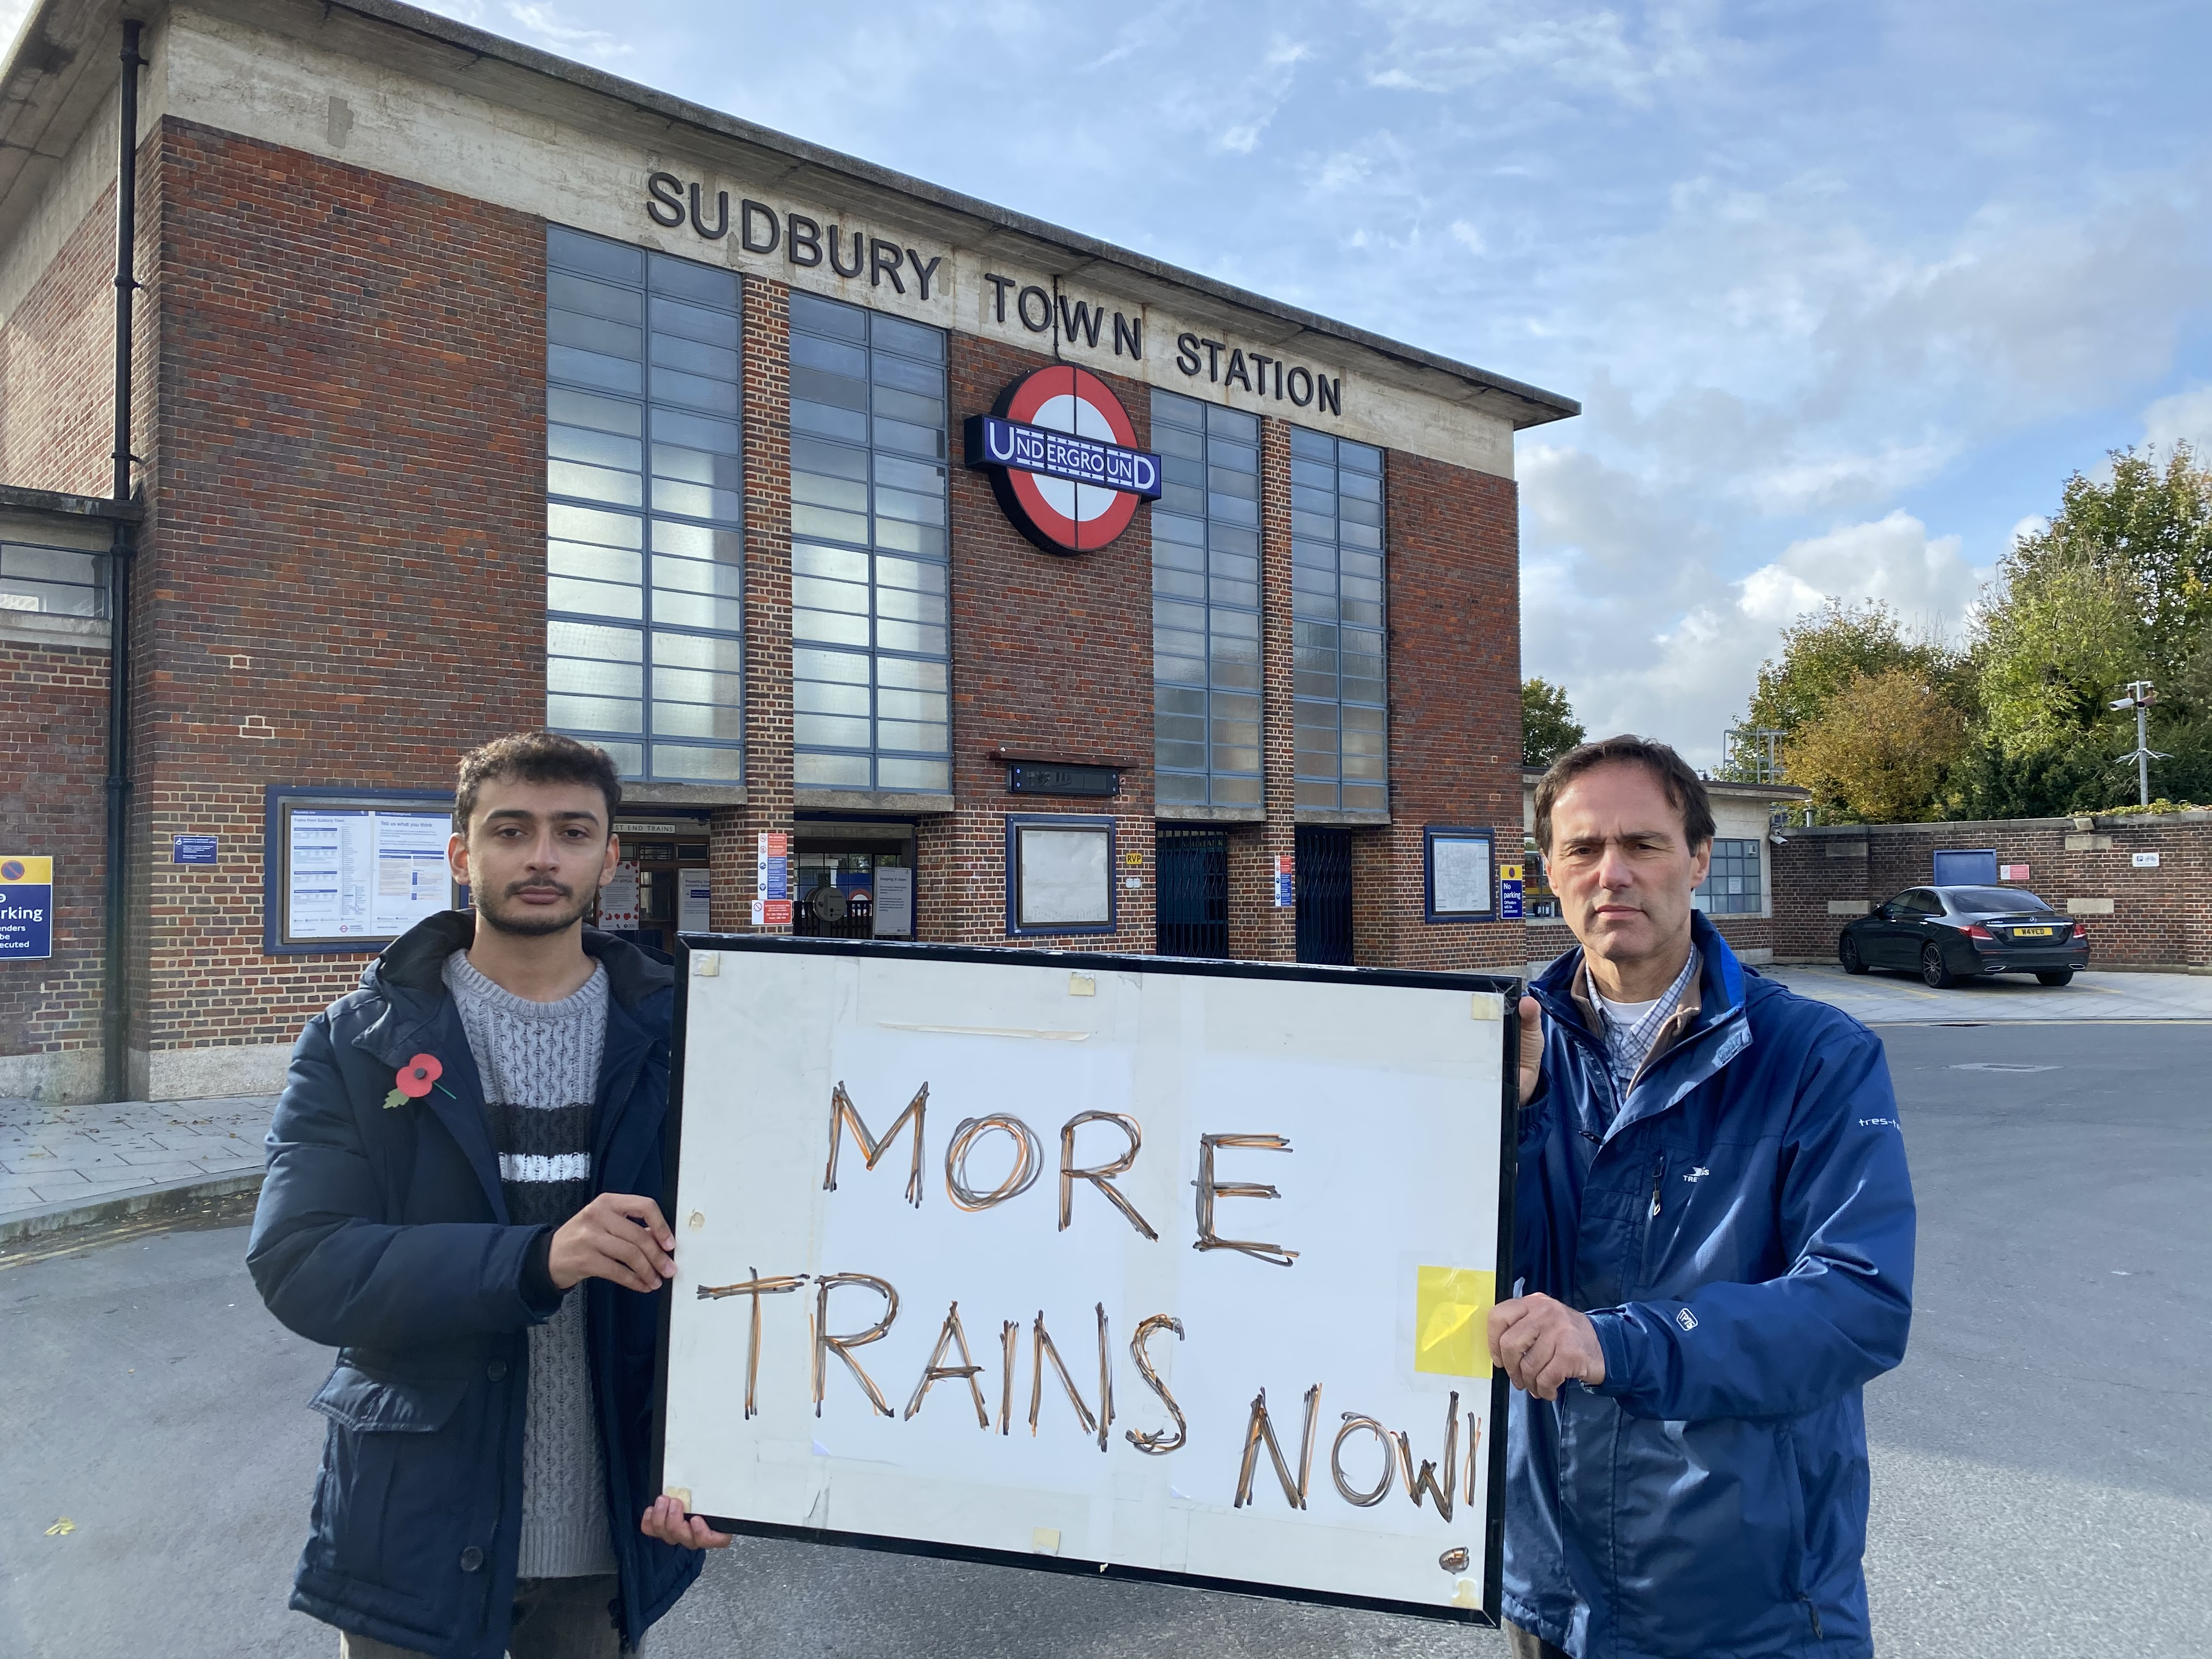 Lib Dems call for better services on the Piccadilly Line